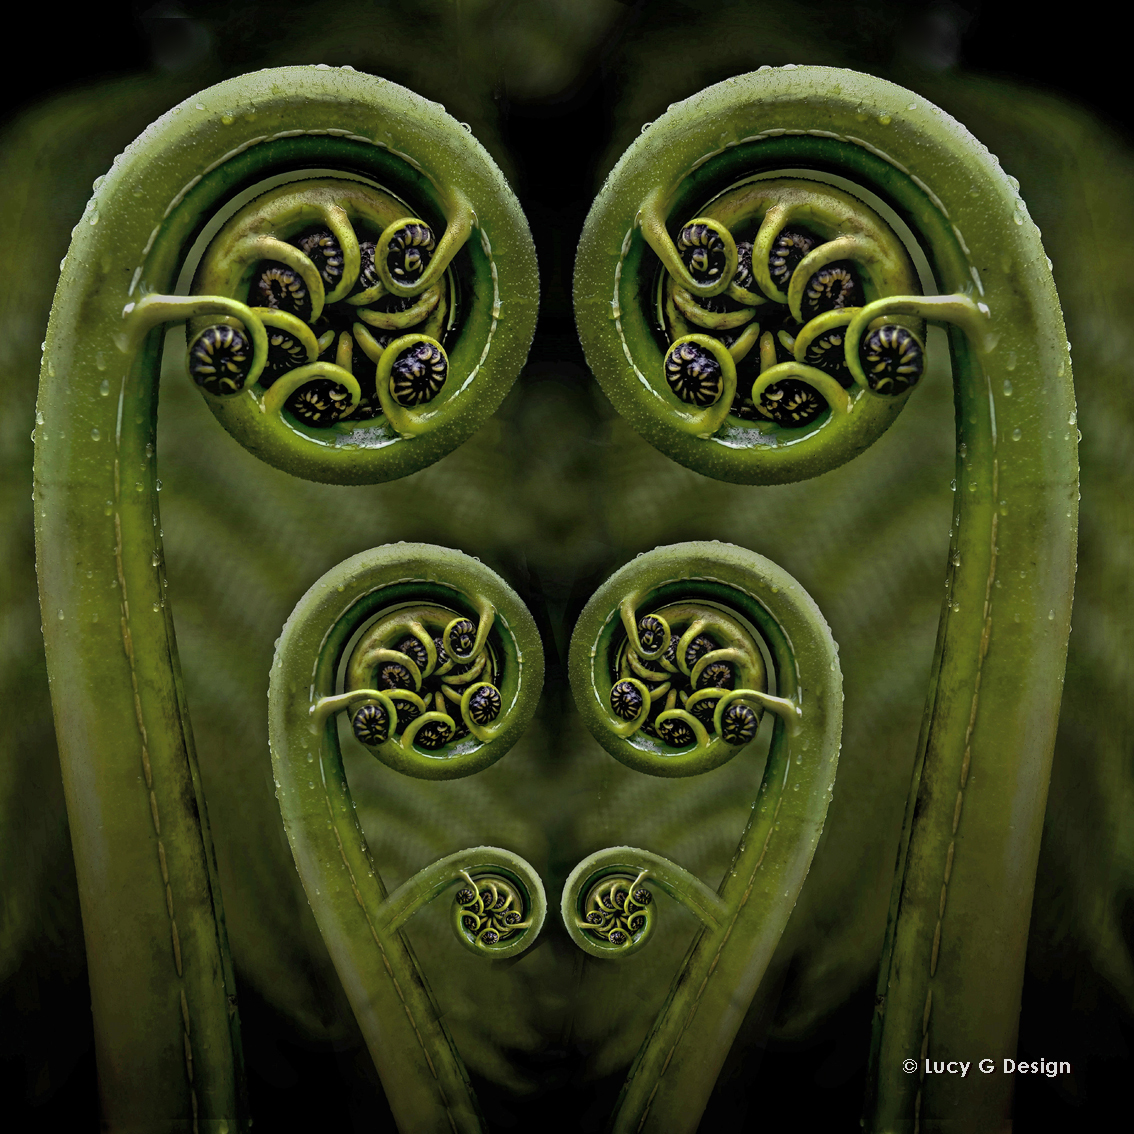 'Fern frond' 51x51cm glass wall art